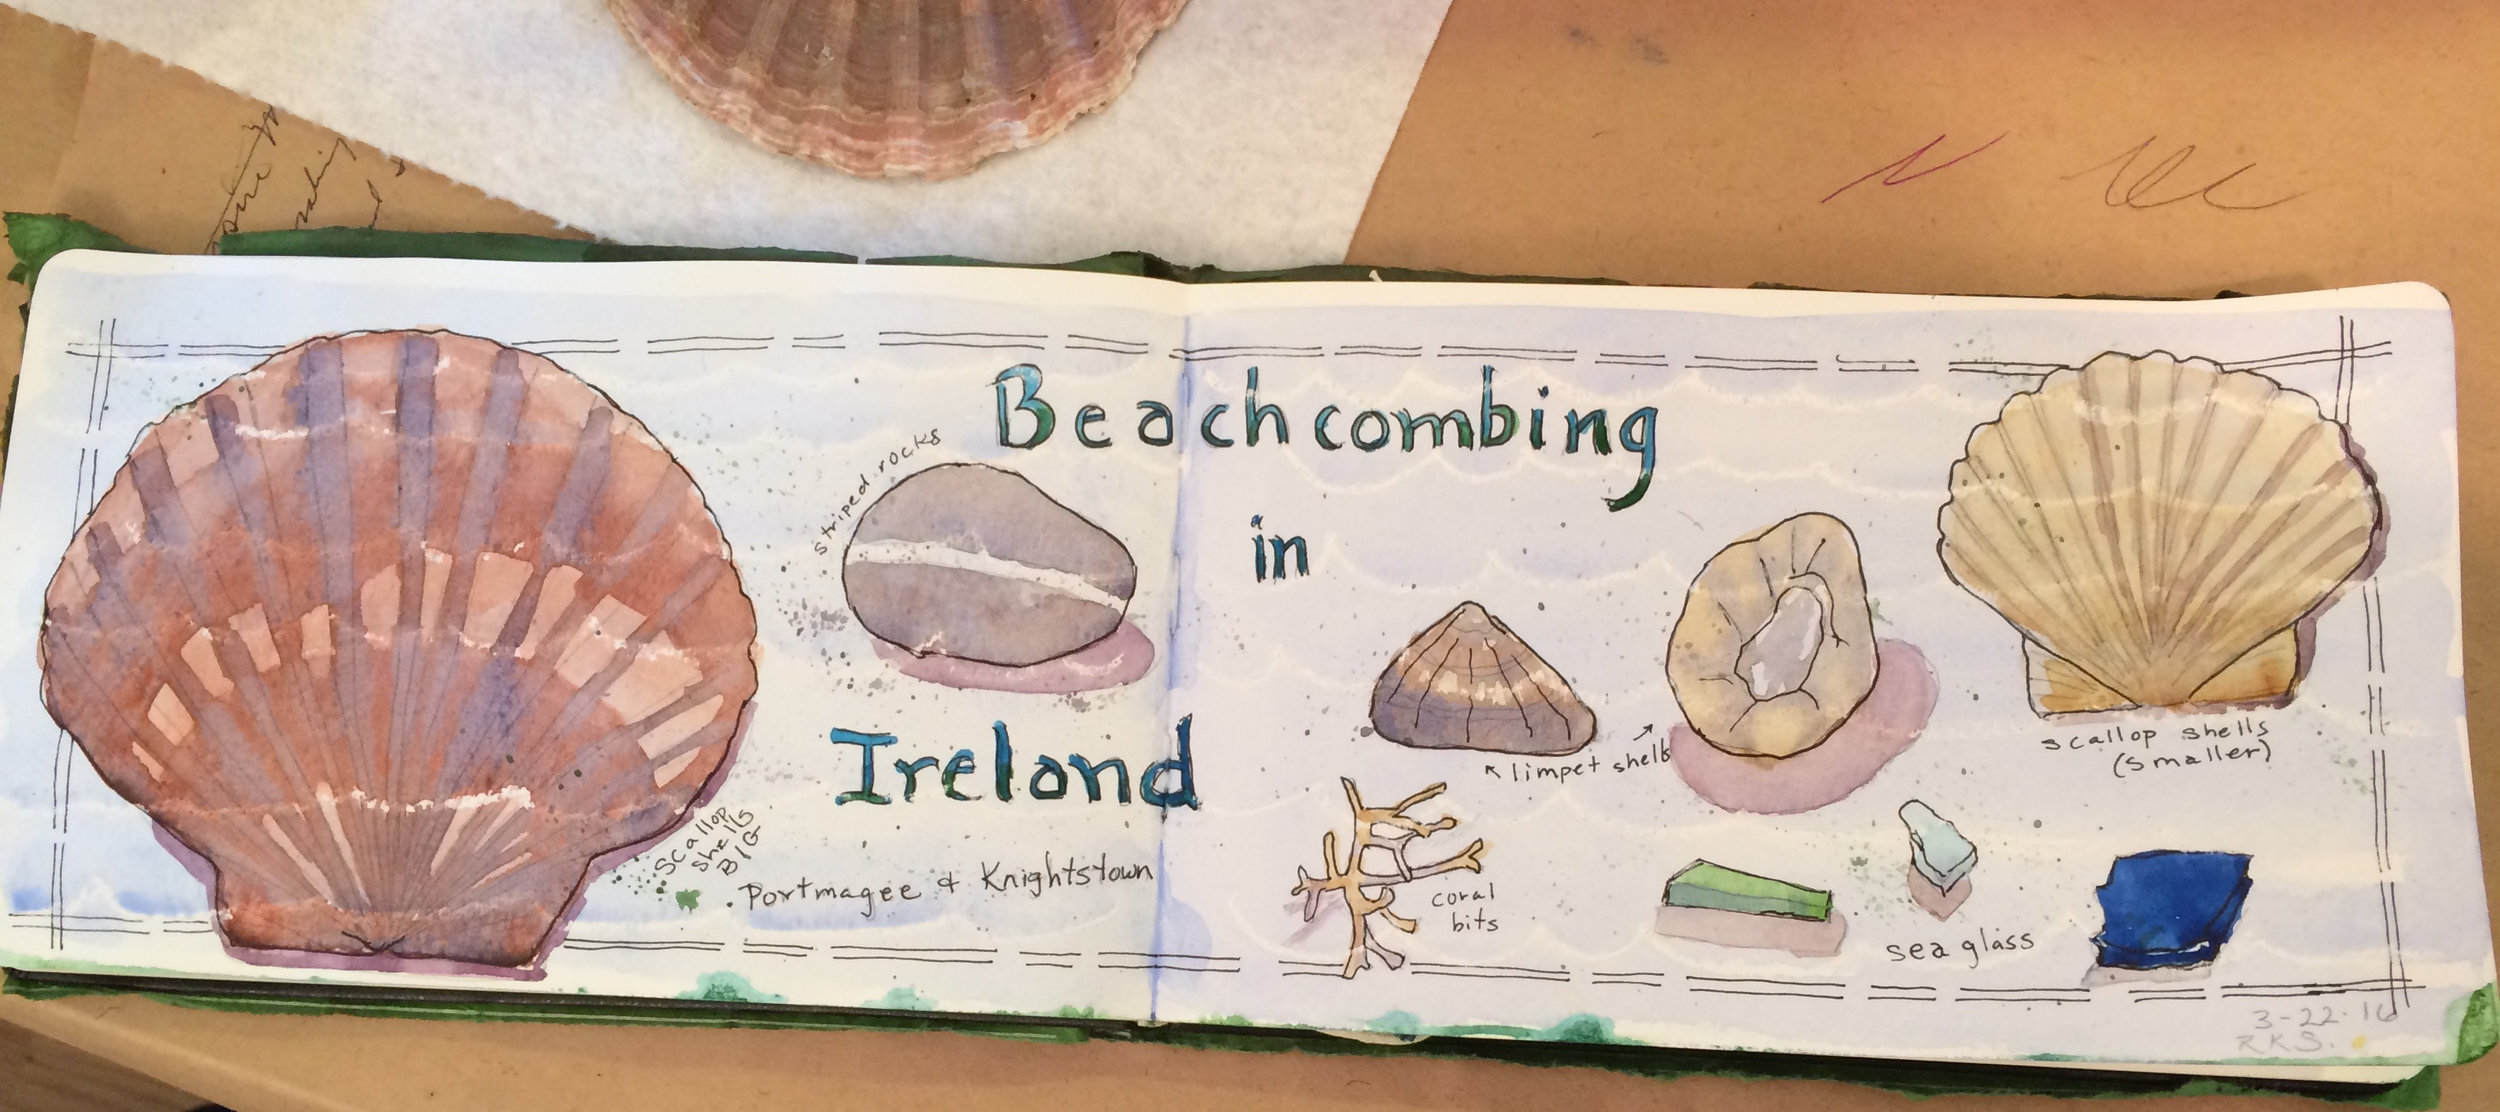 Ireland Sketchbook-Beachcombing in Ireland-2016-pretrip.jpg